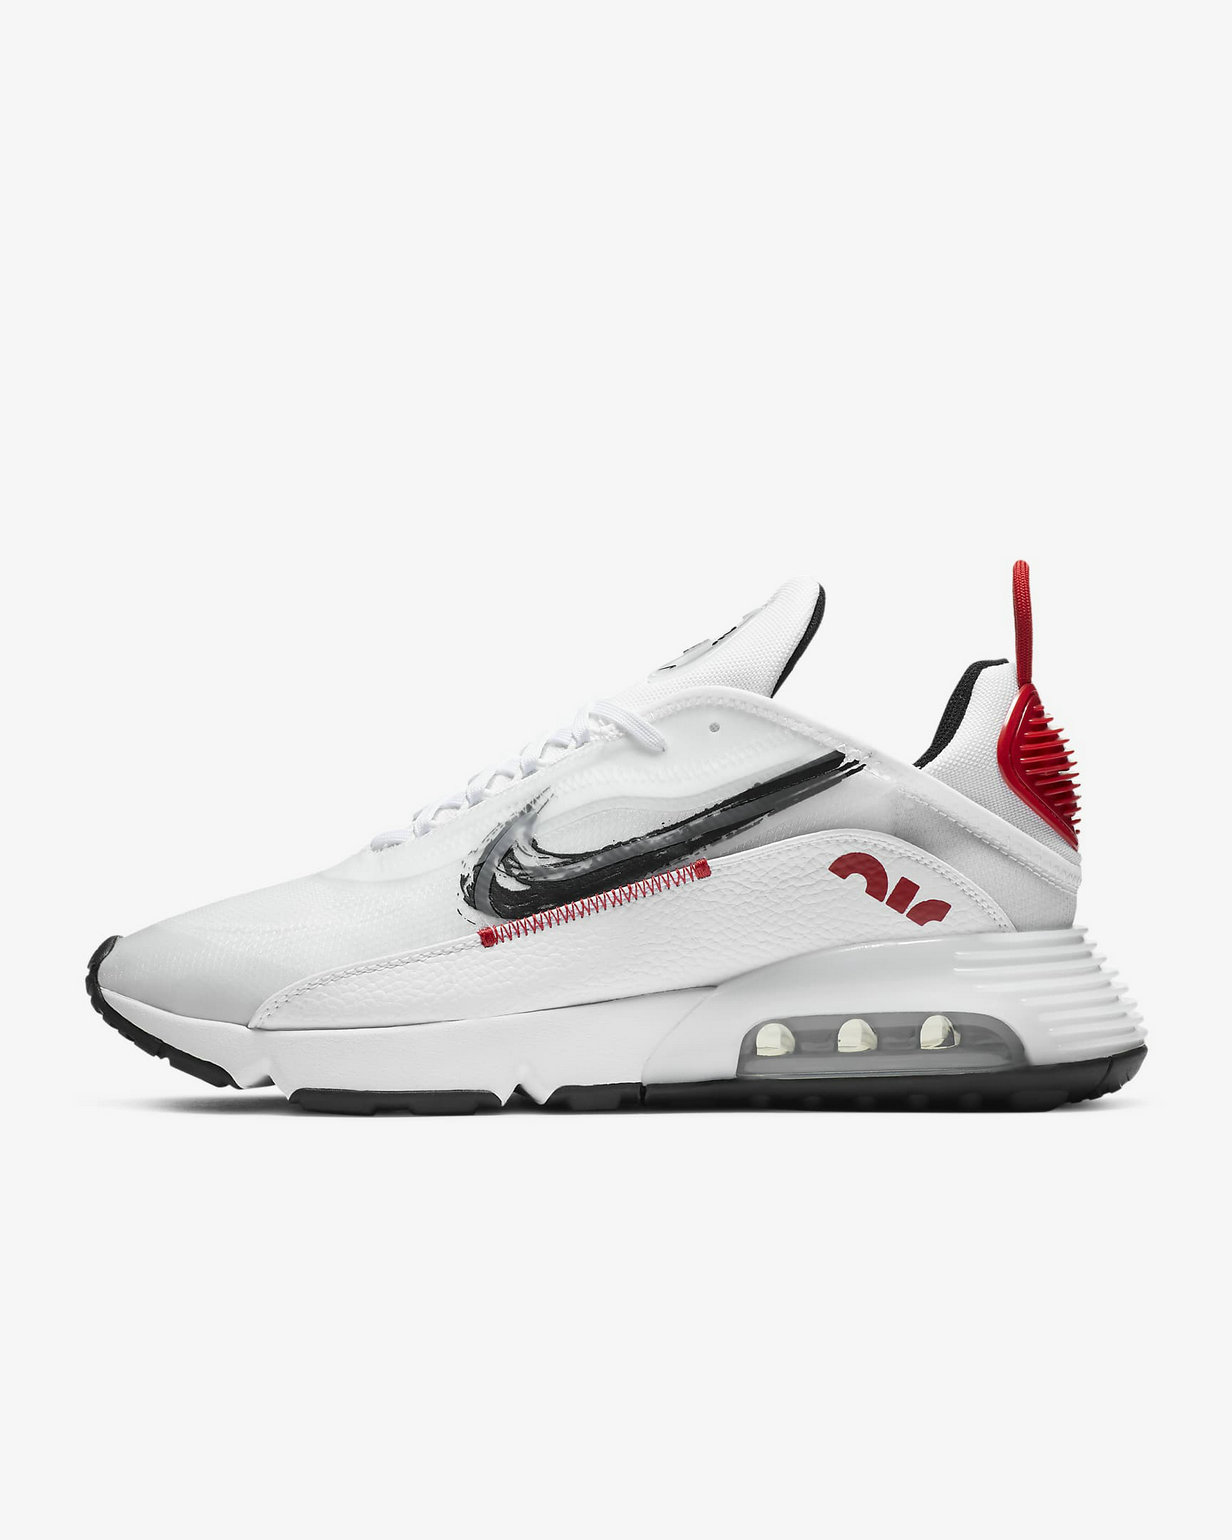 2021 Wholesale Cheap Nike Air Max 2090 White University Red Black DA4304-100 - www.wholesaleflyknit.com